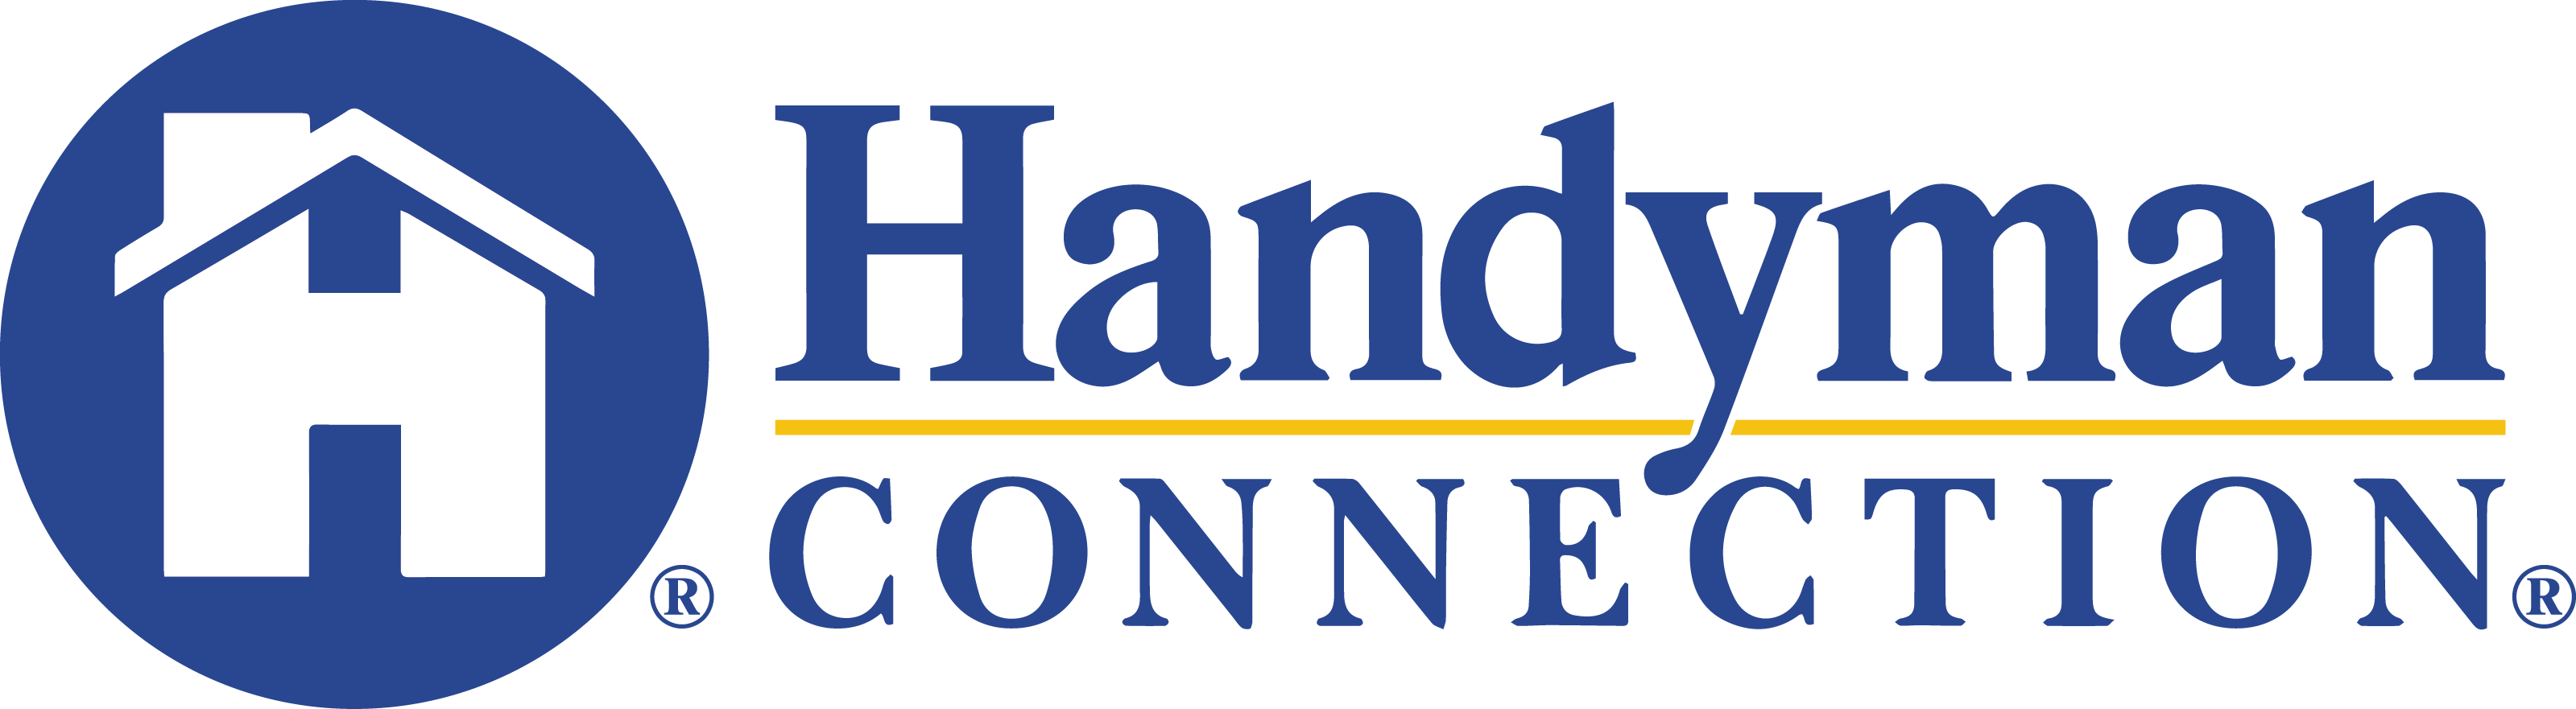 Handyman Connection of Mountain View, CA